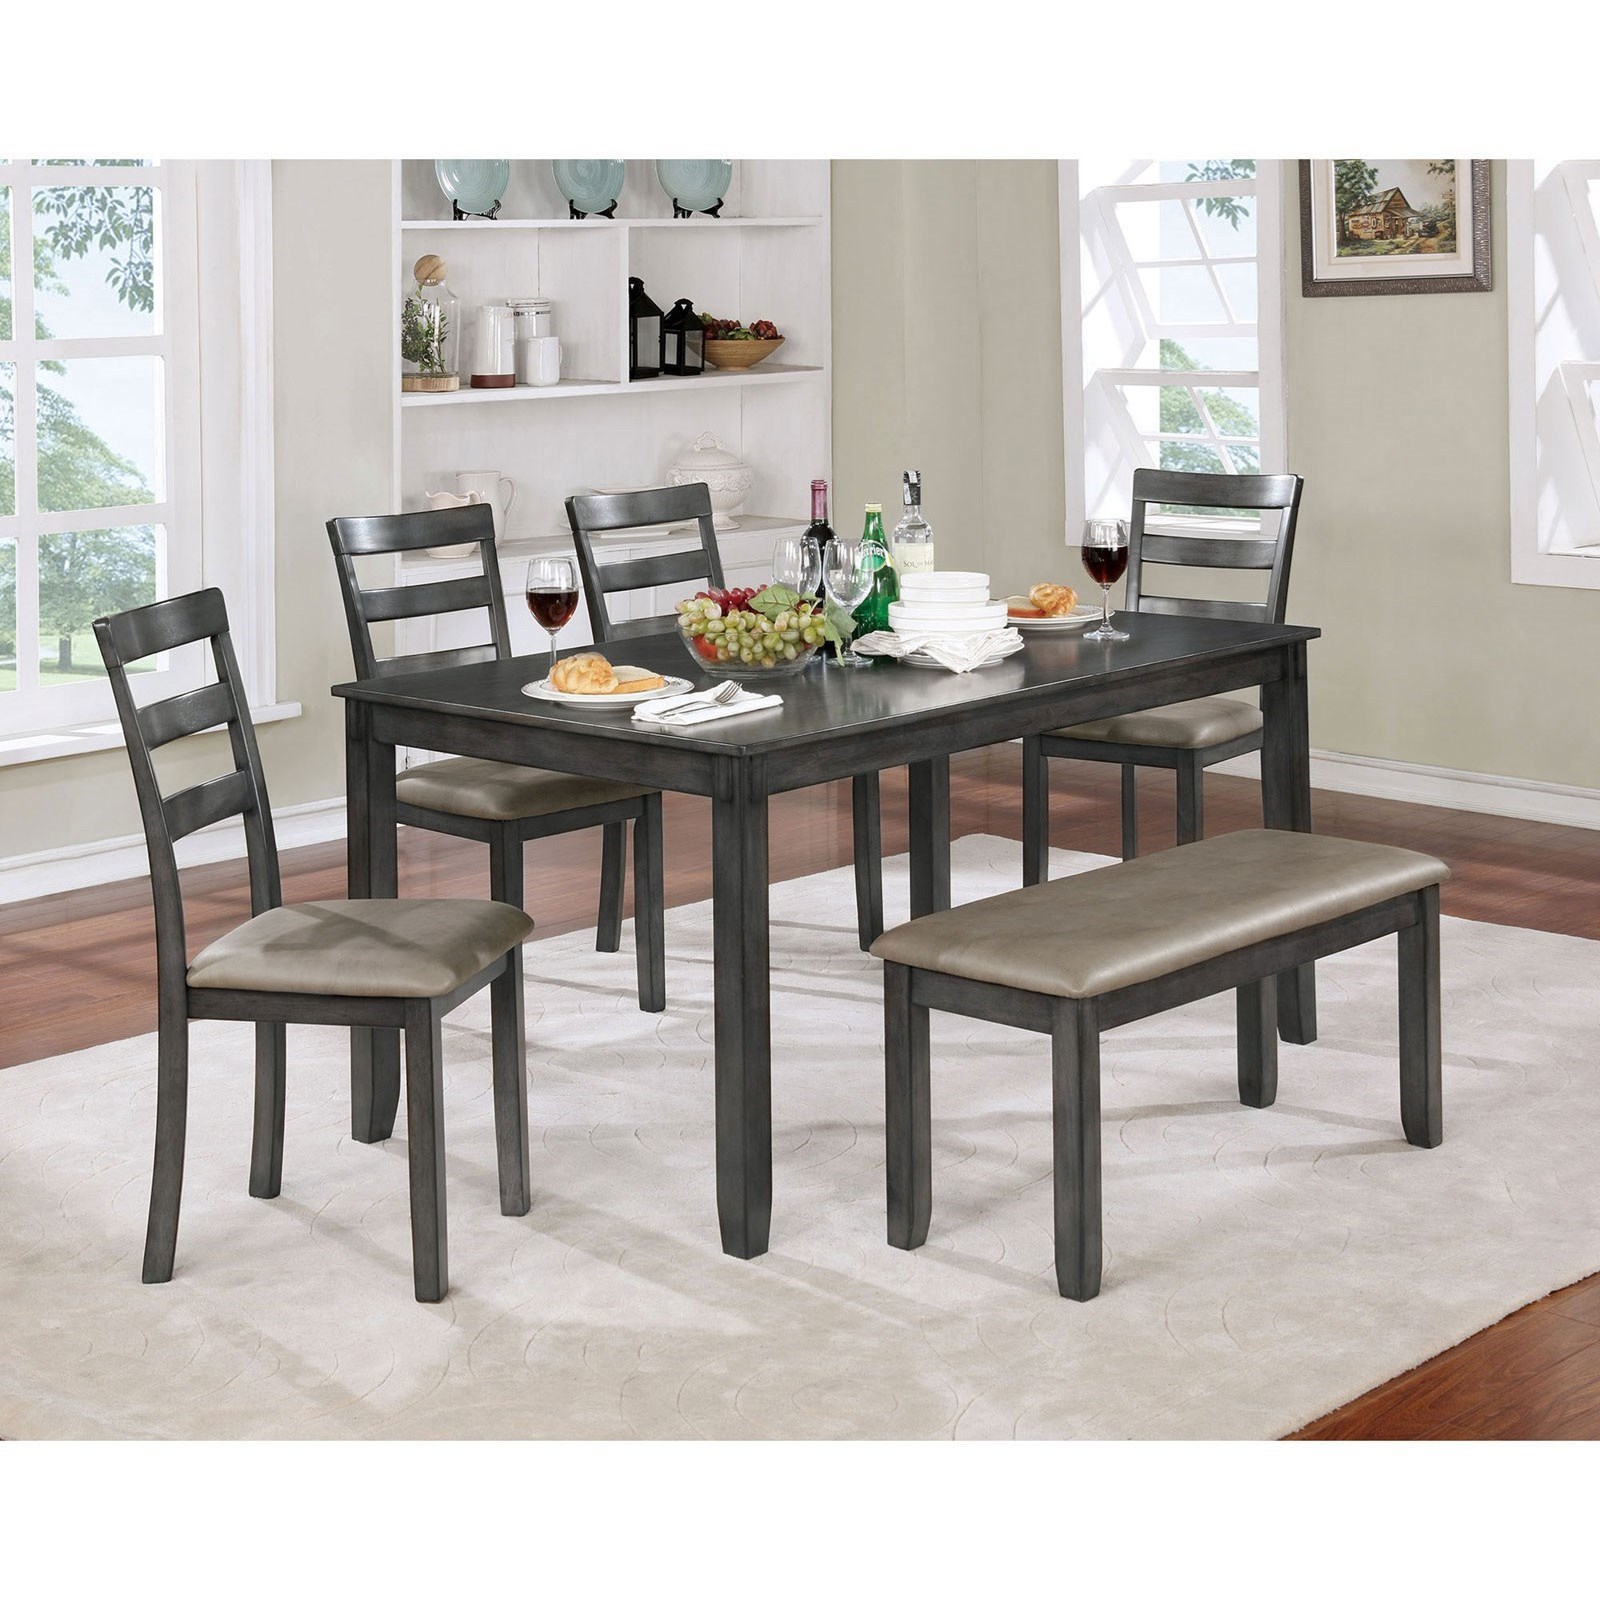 Gloria 6 Pc. Dining Table Set at Household Furniture